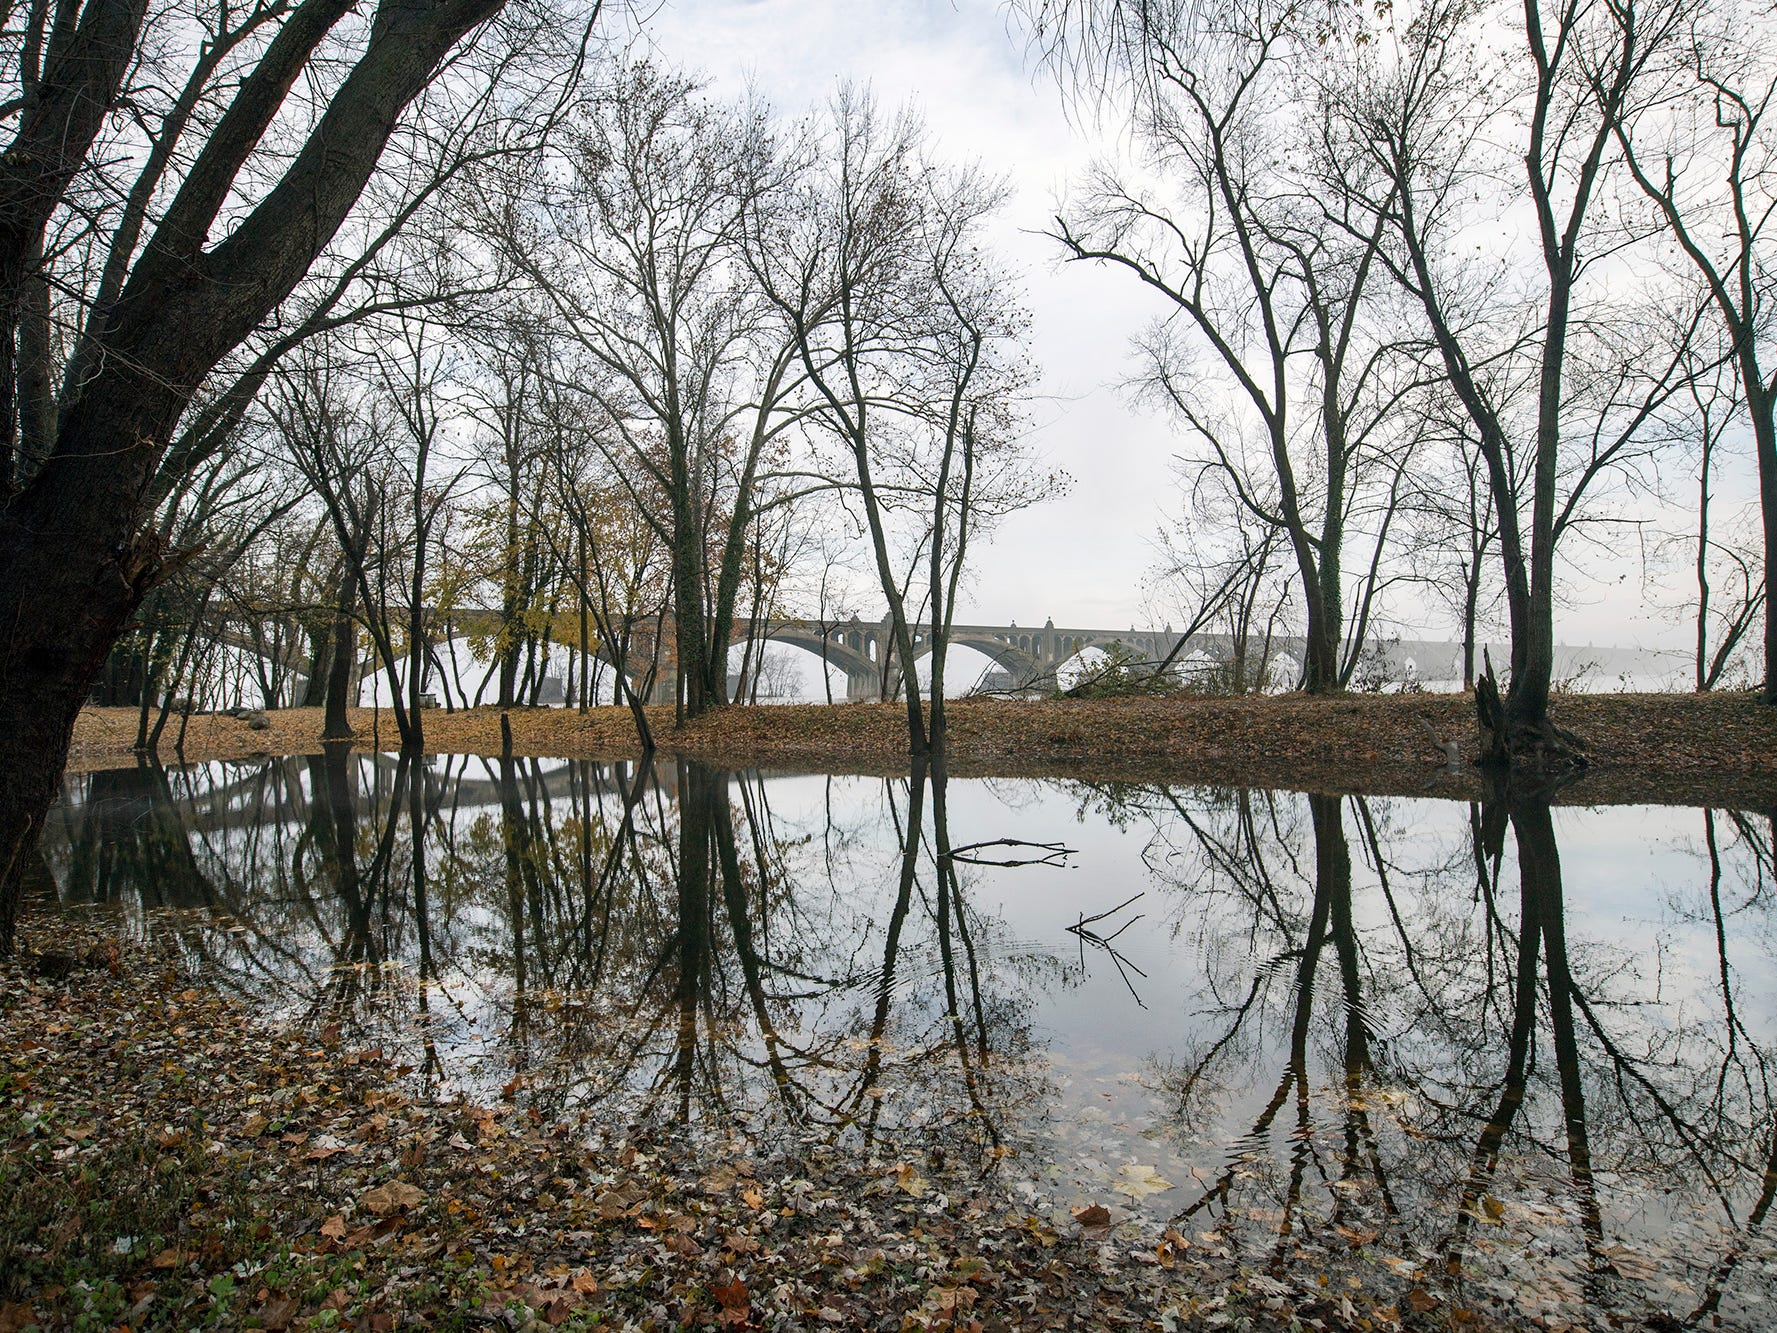 The flooded remains of the Susquehanna and Tidewater Canal in Wrightsville reflects the bare trees on Sunday November 25, 2018.